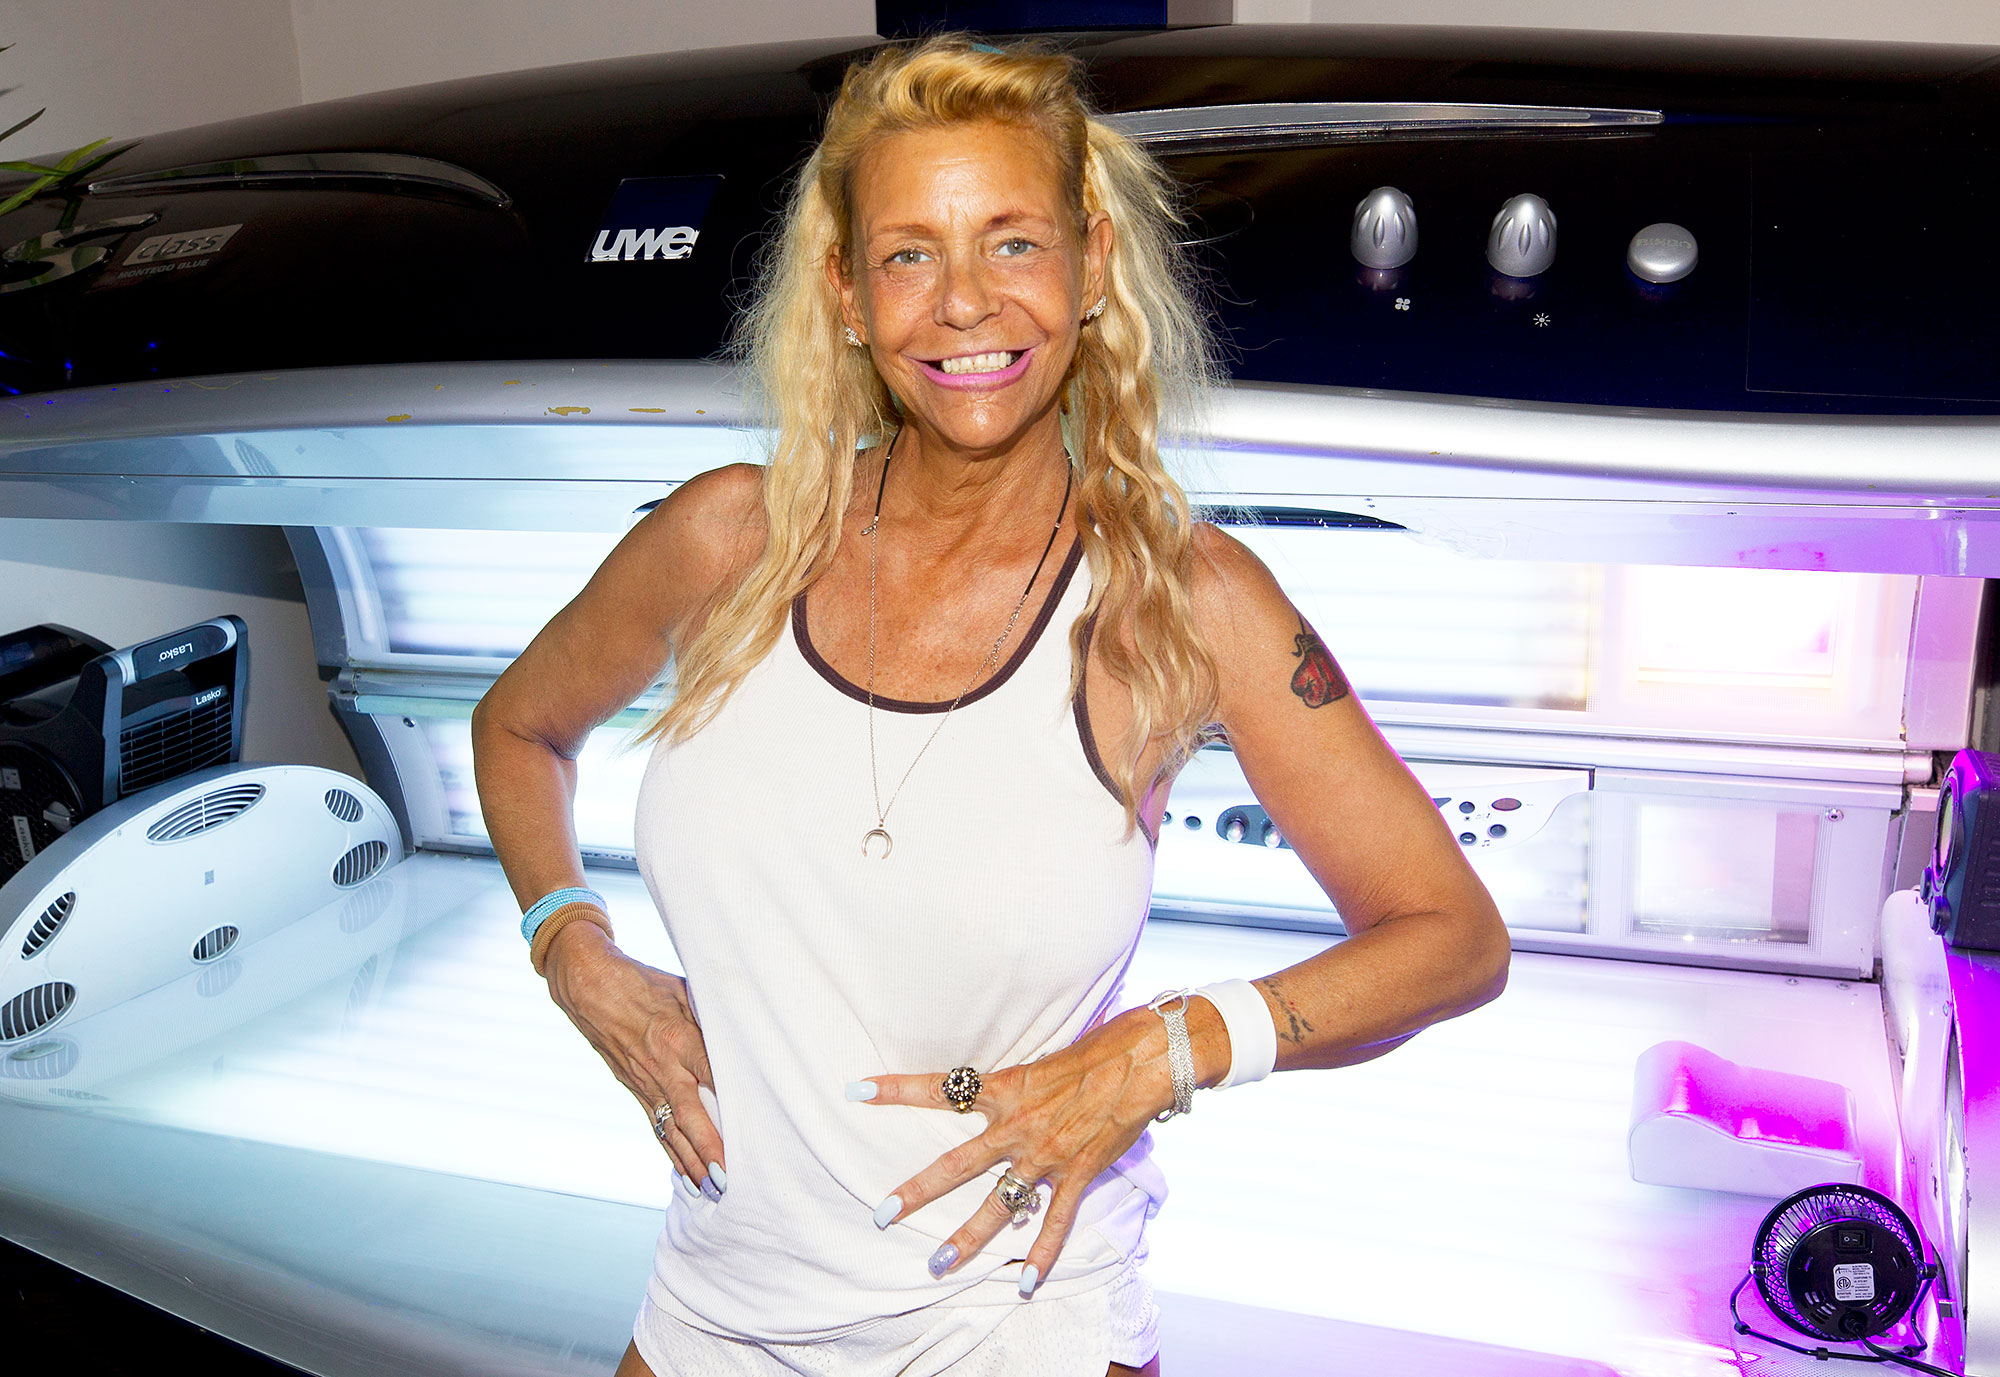 Celebrity Health: Tan Mom Patricia Krentcil Poses In Front of a Tanning Bed Ready to Take the Music Business By Storm